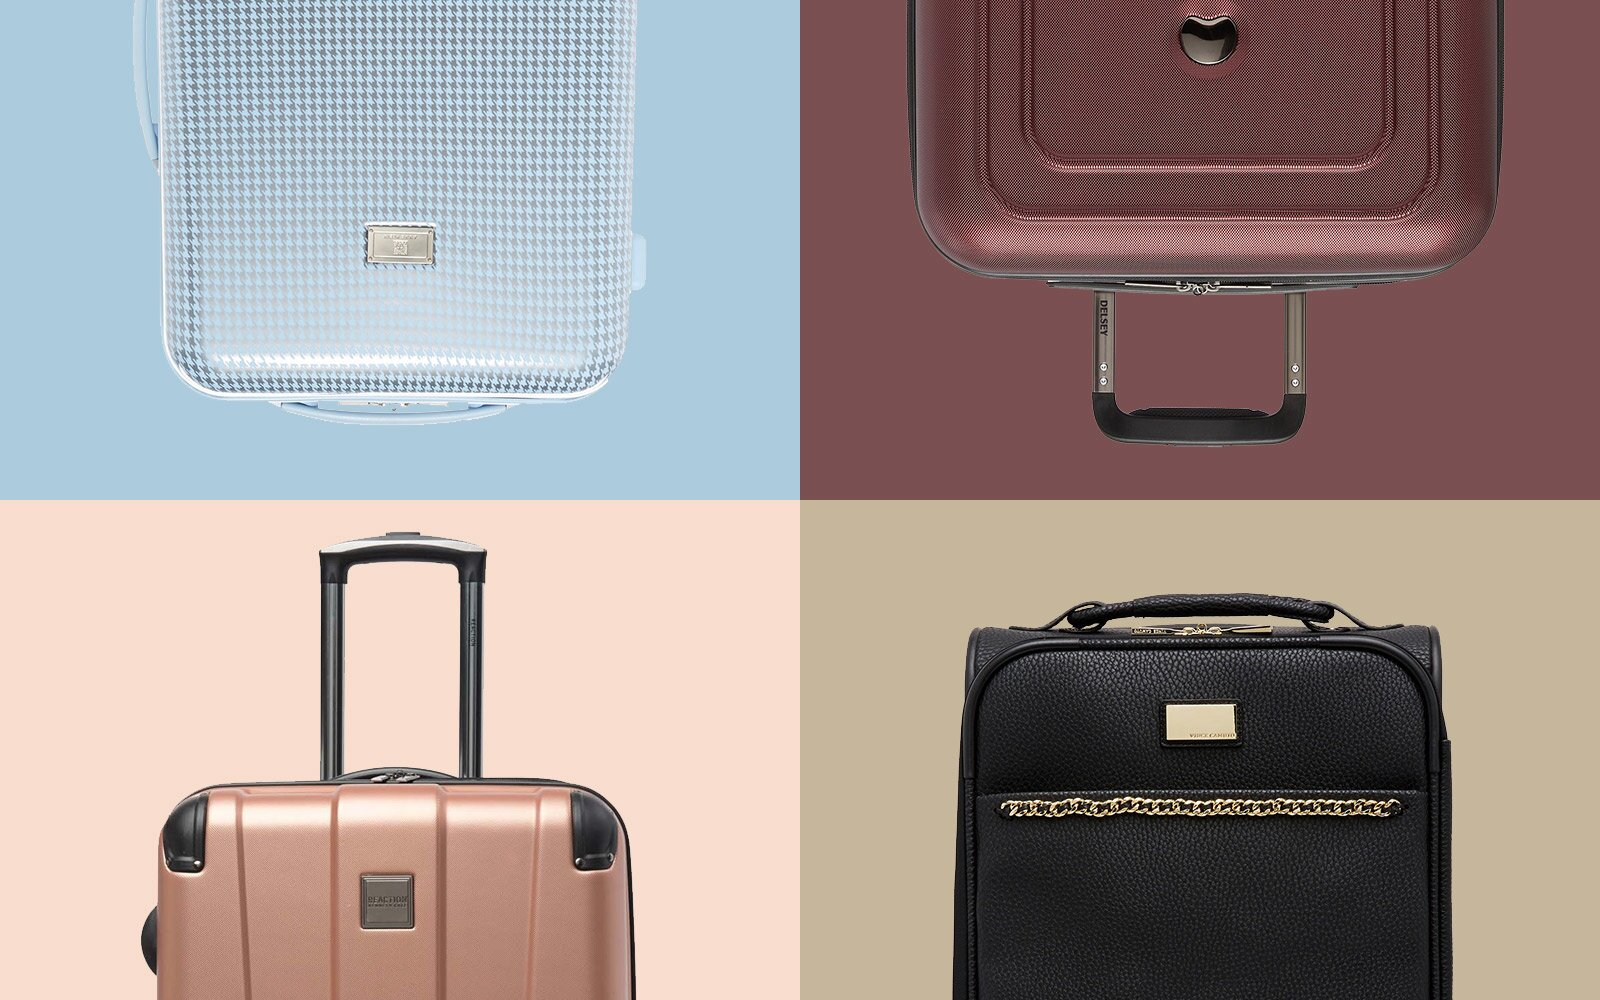 e8af586f6f20 Nordstrom Rack Has a Huge Sale on Luggage Sets Right Now | Travel + ...